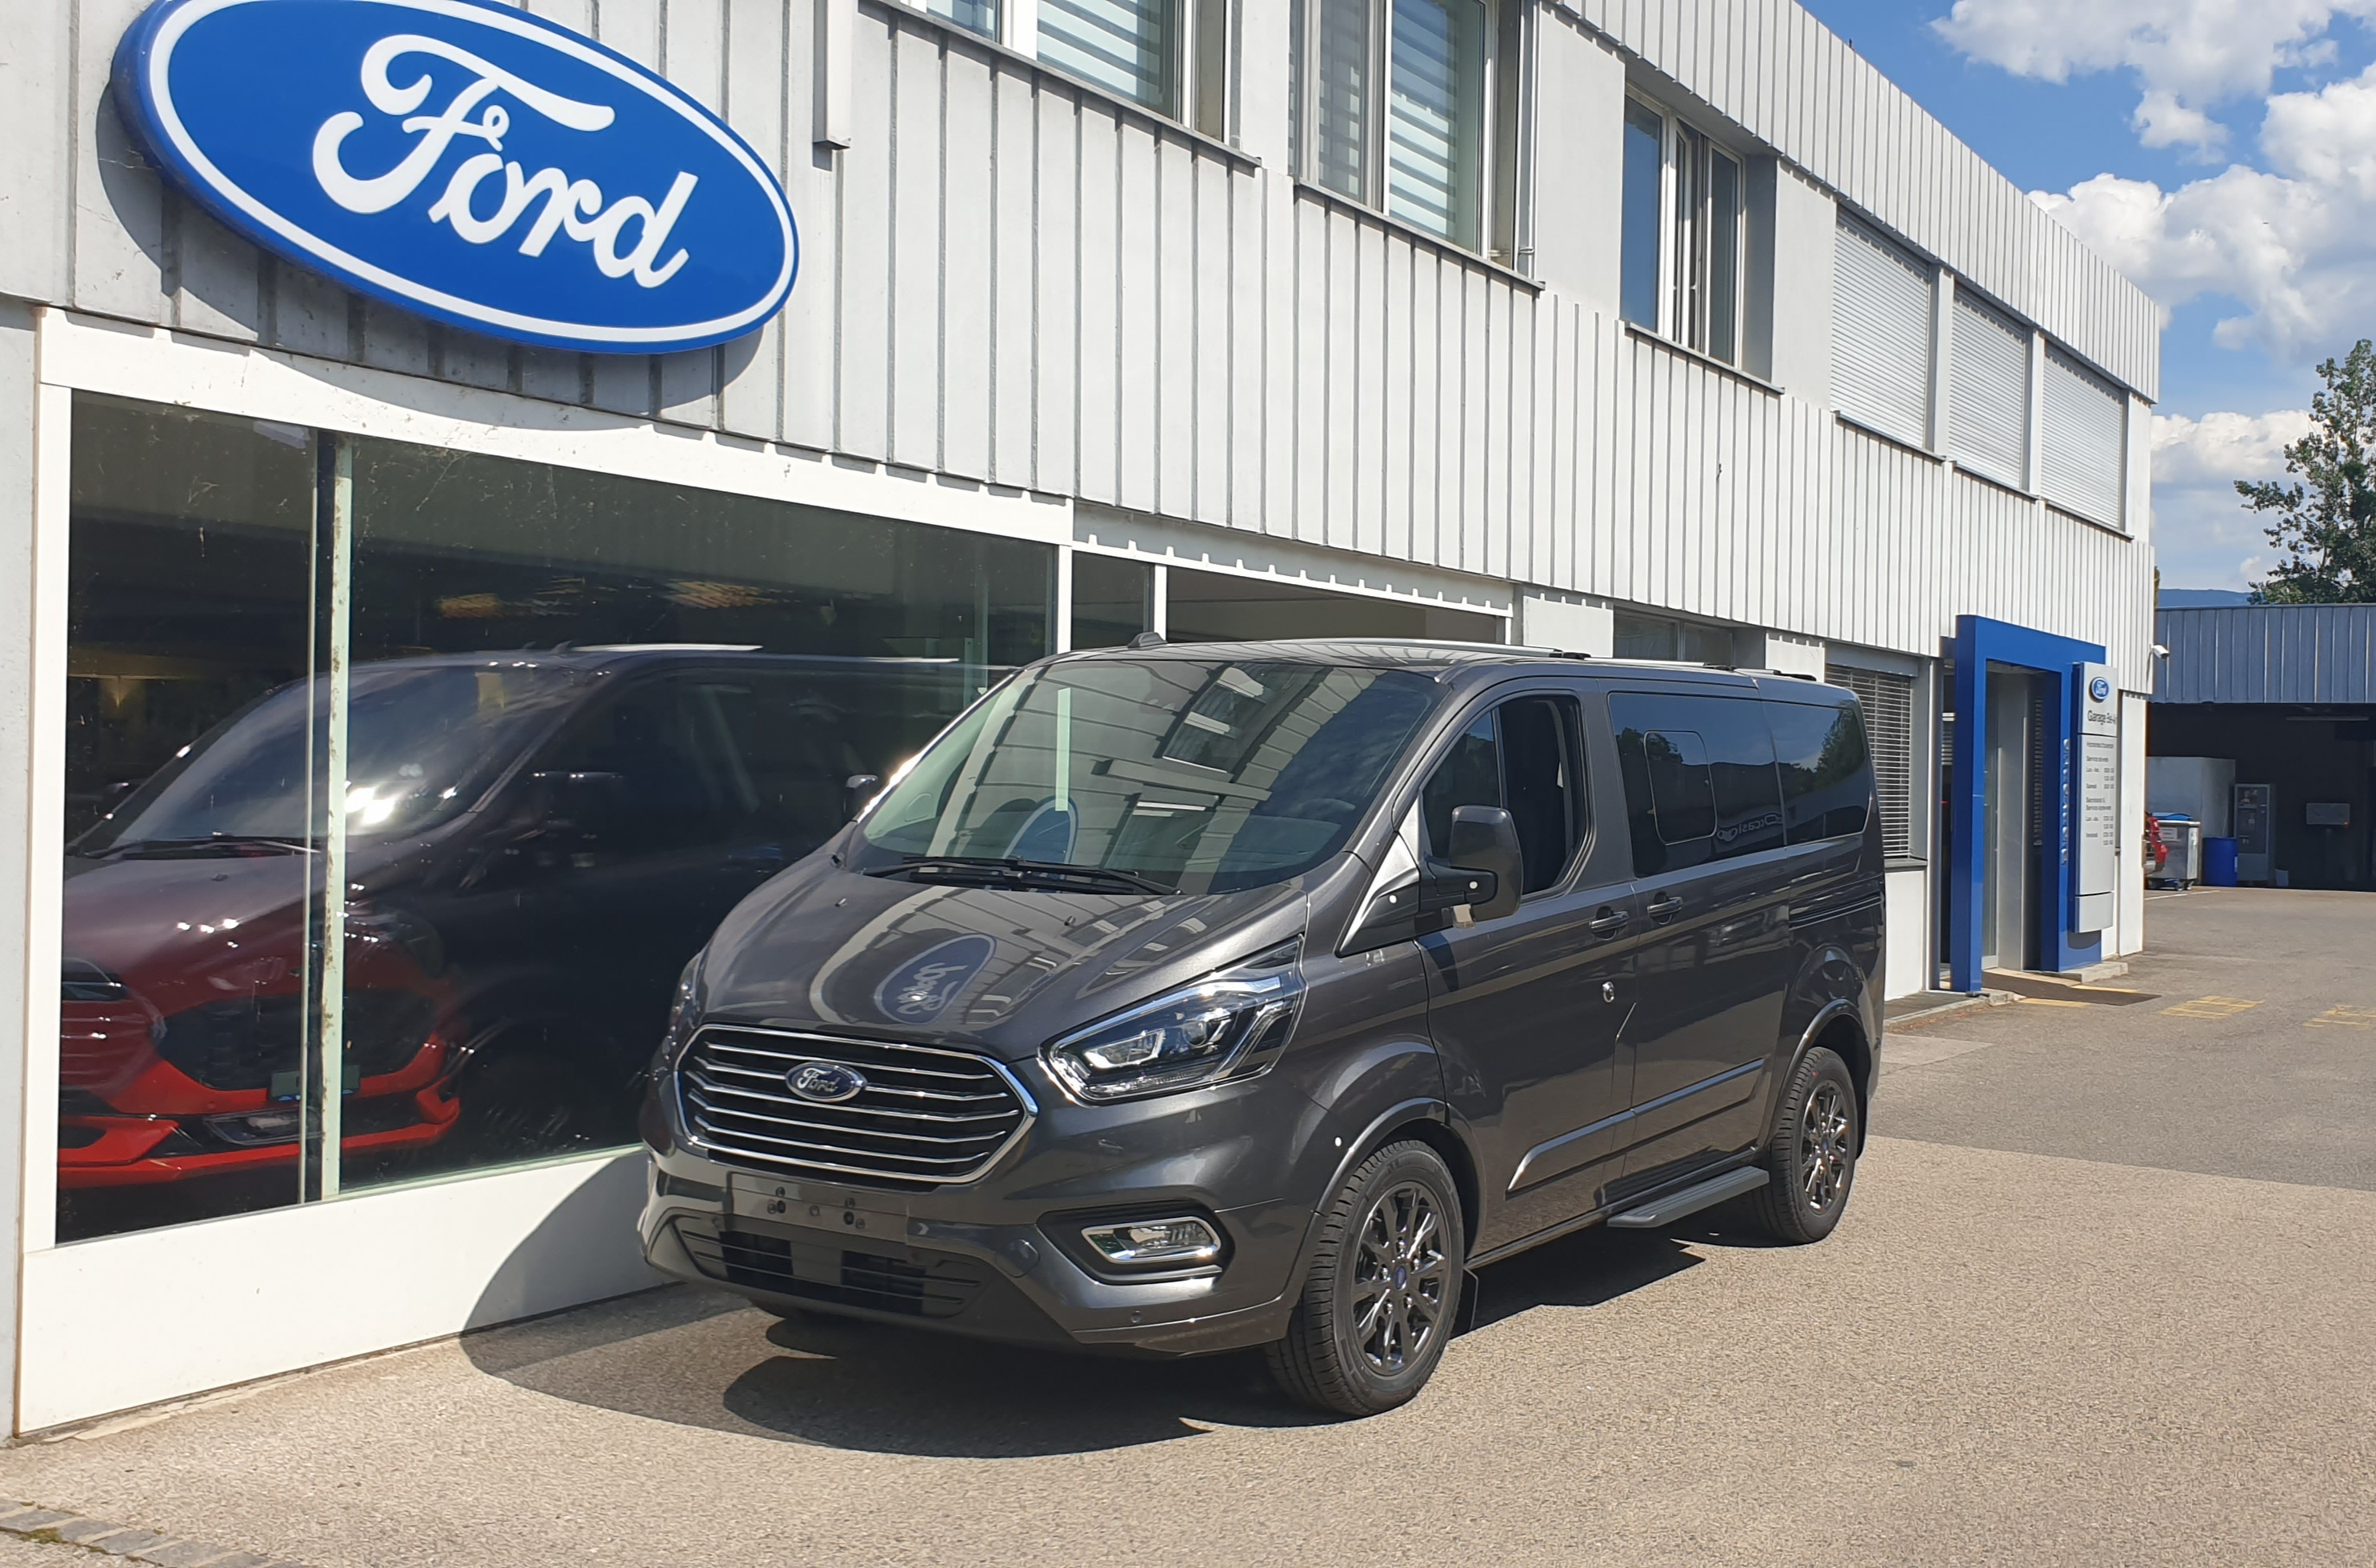 bus Ford Tourneo C bus 320 L1 2.0 TDCi